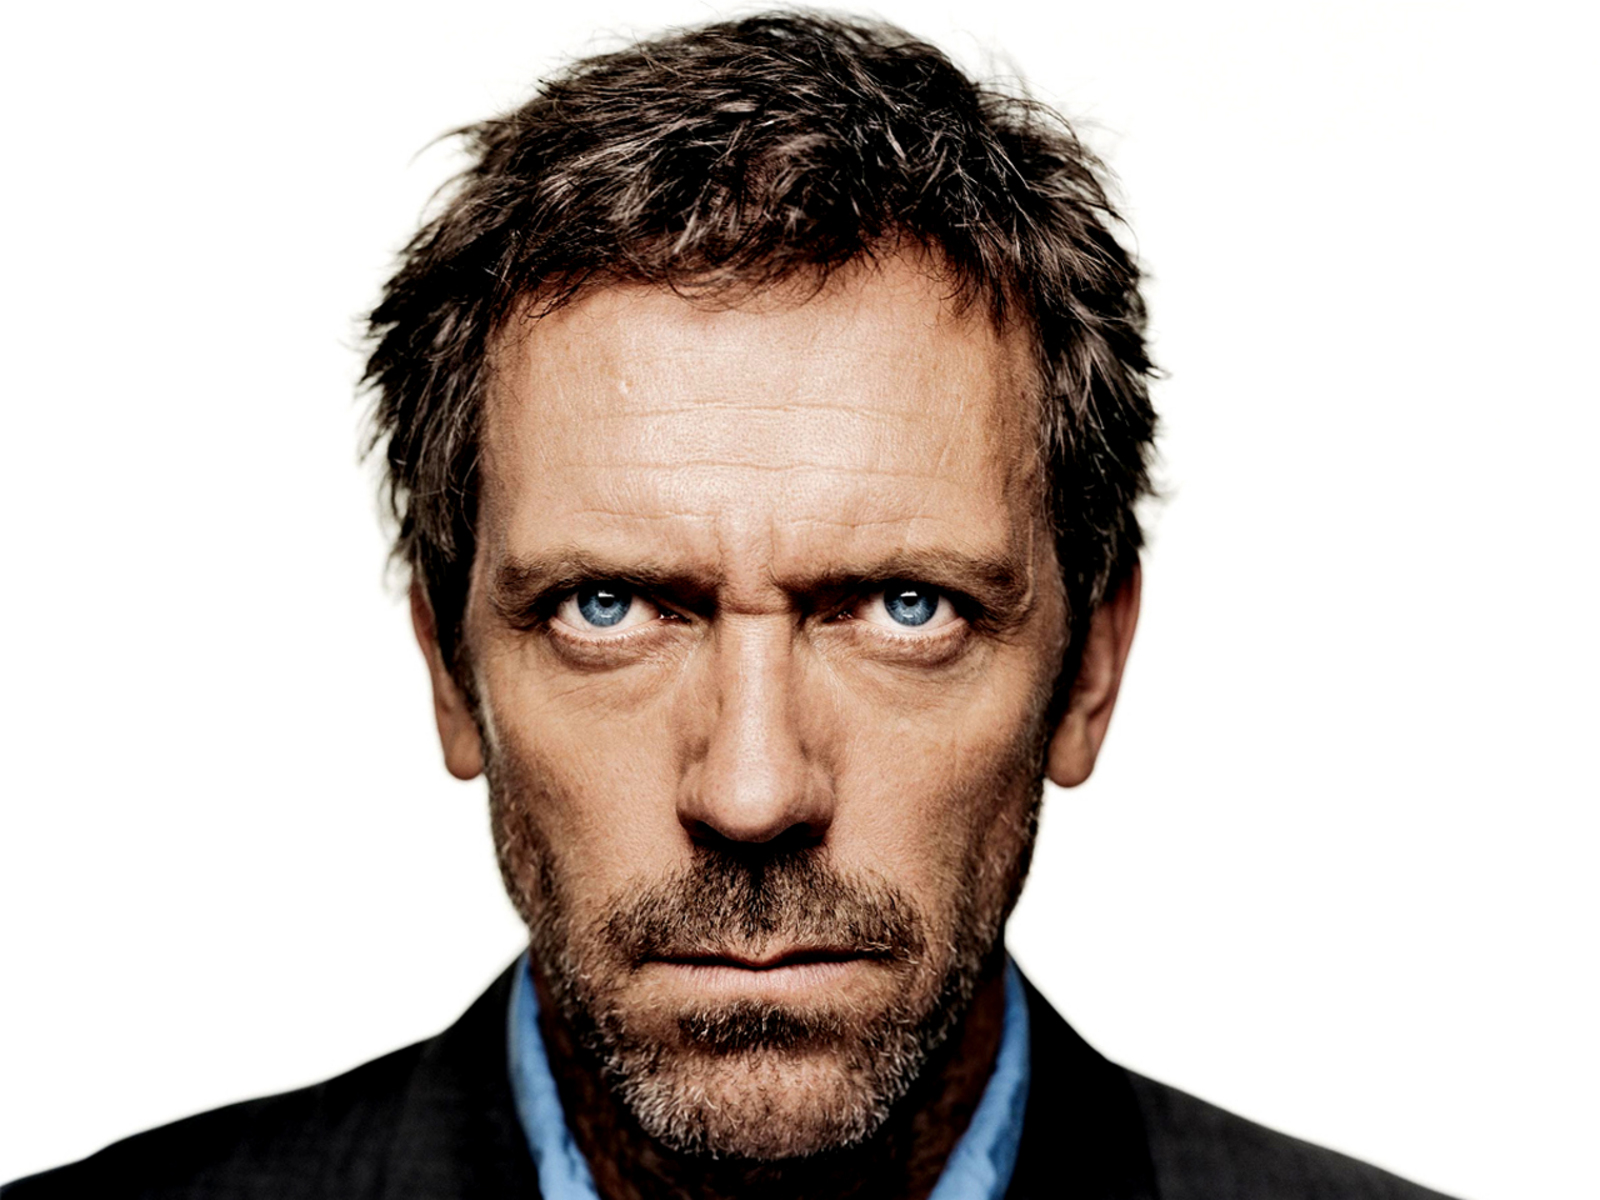 Image   Dr house wallpaper 6jpg   Epic Rap Battles of History Wiki 1600x1200